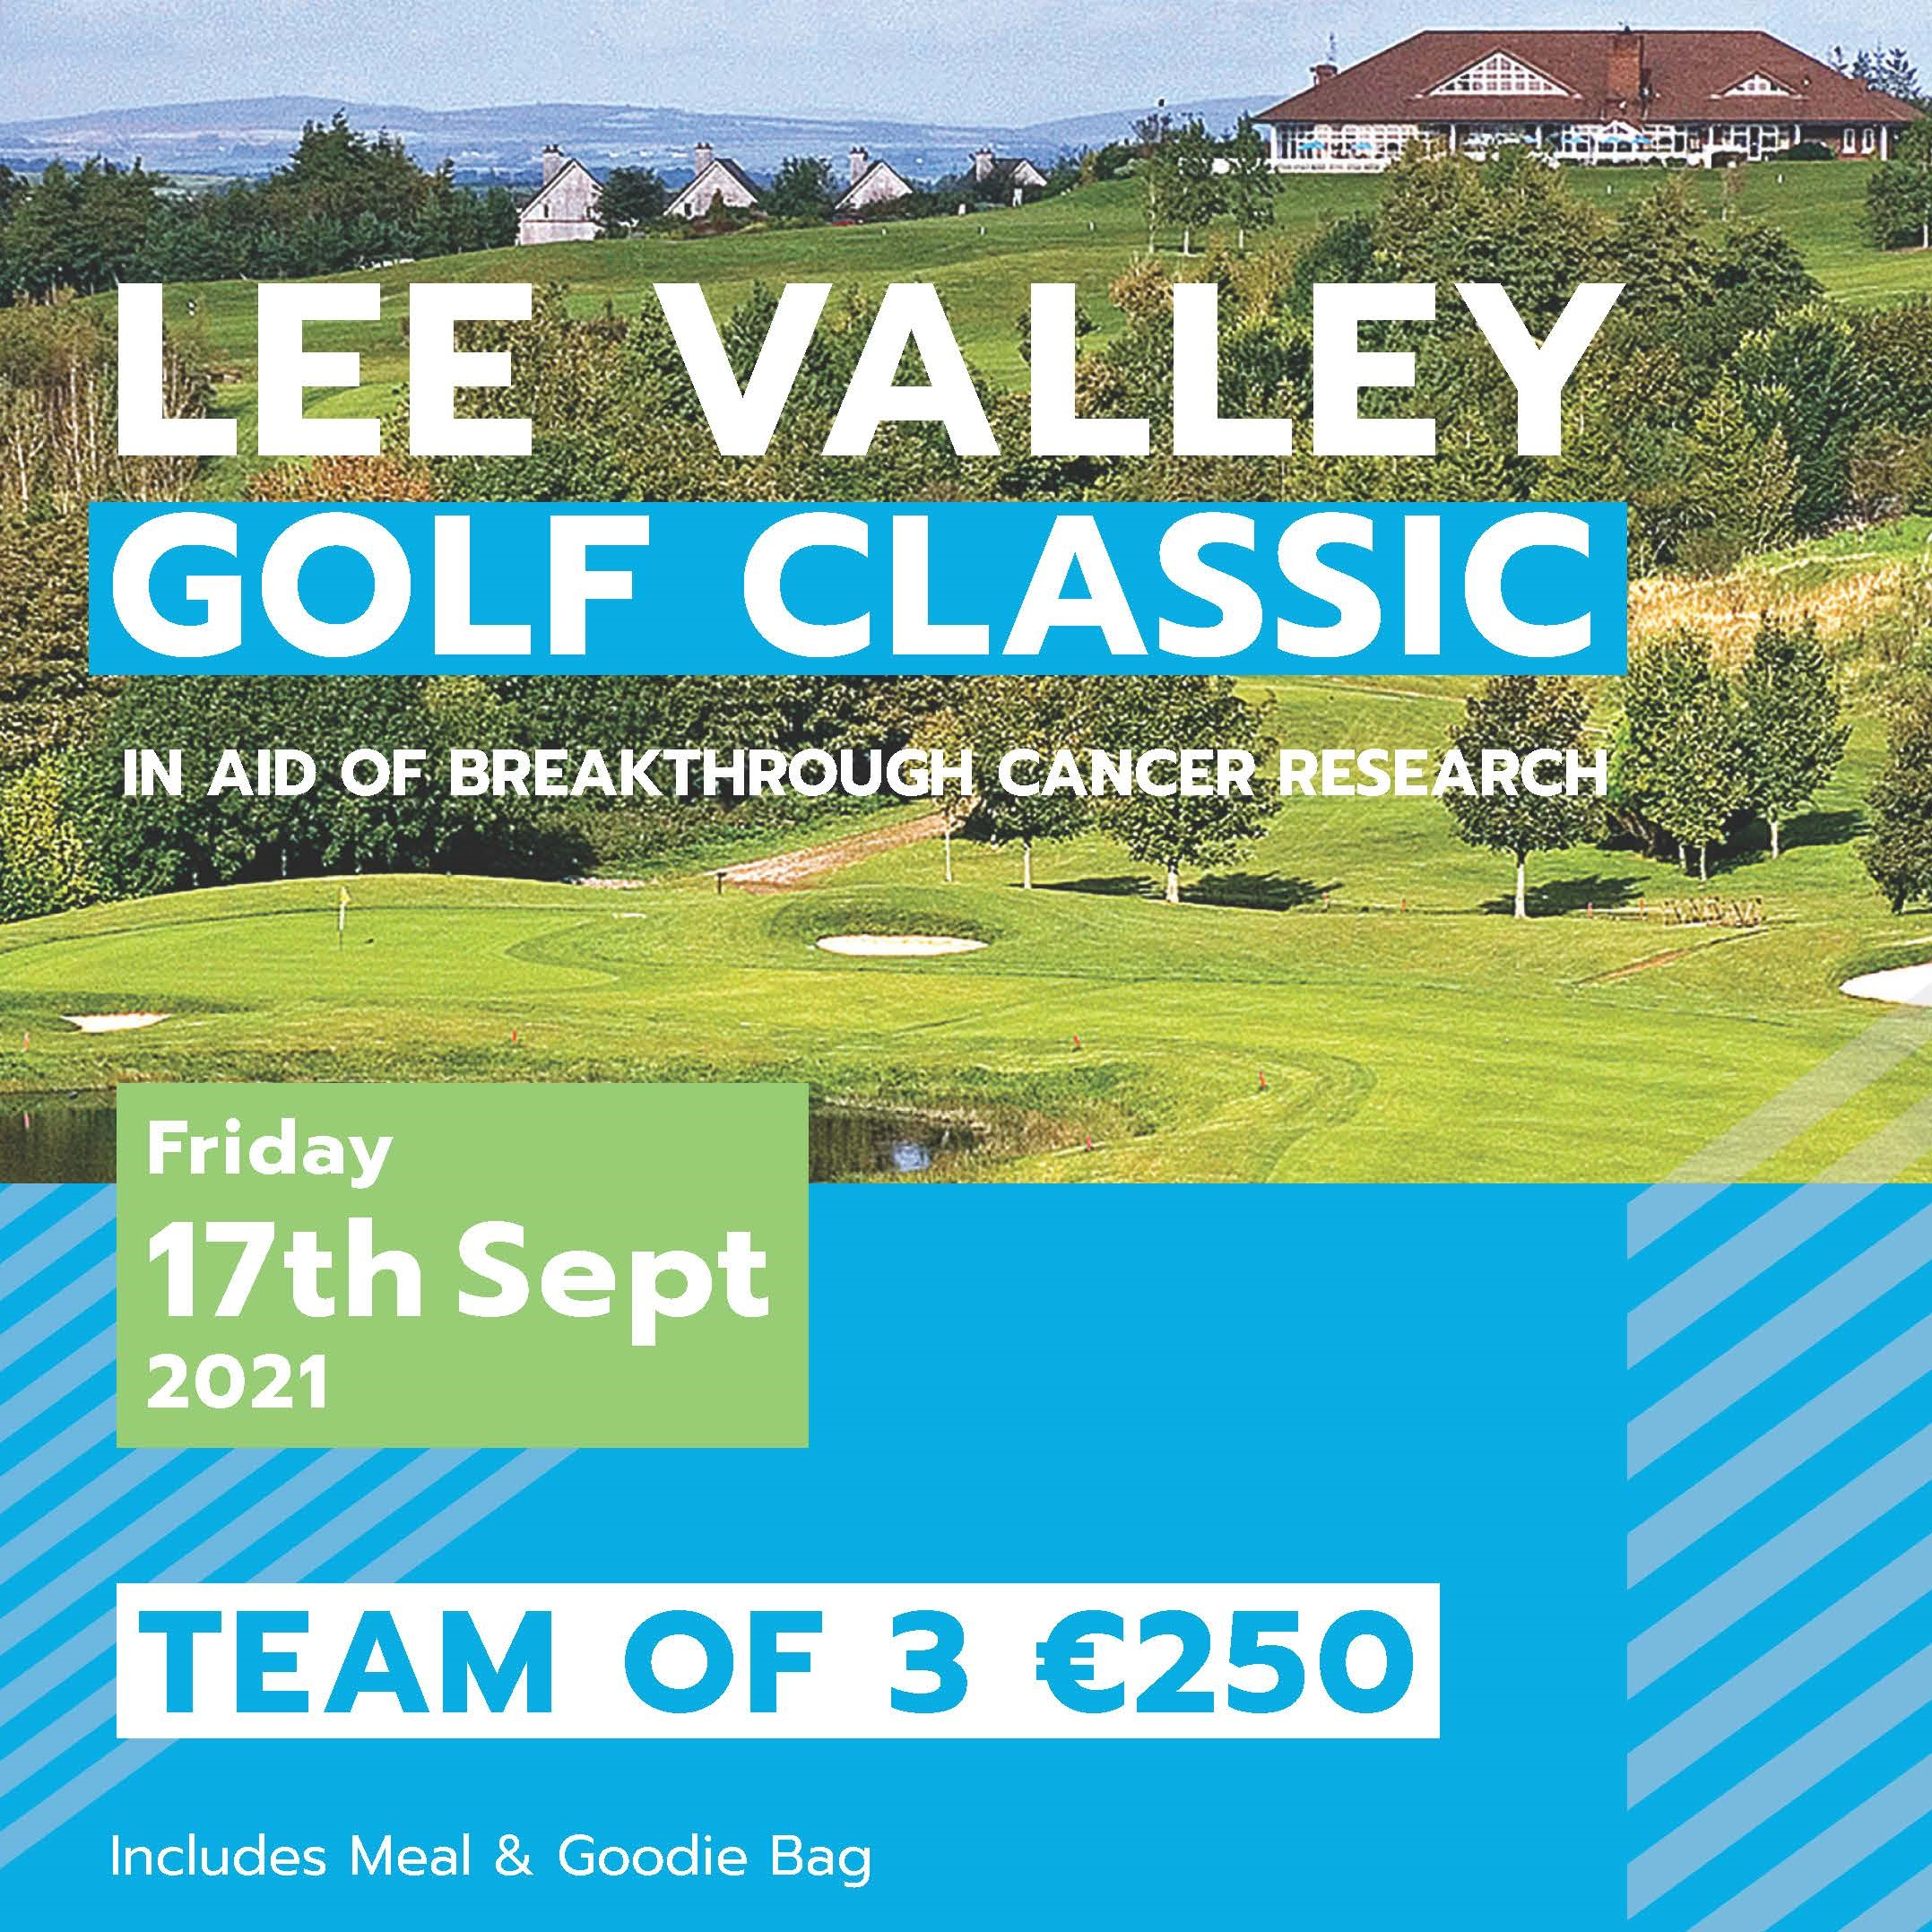 Lee Valley Golf Classic in aid of Breakthrough Cancer Research